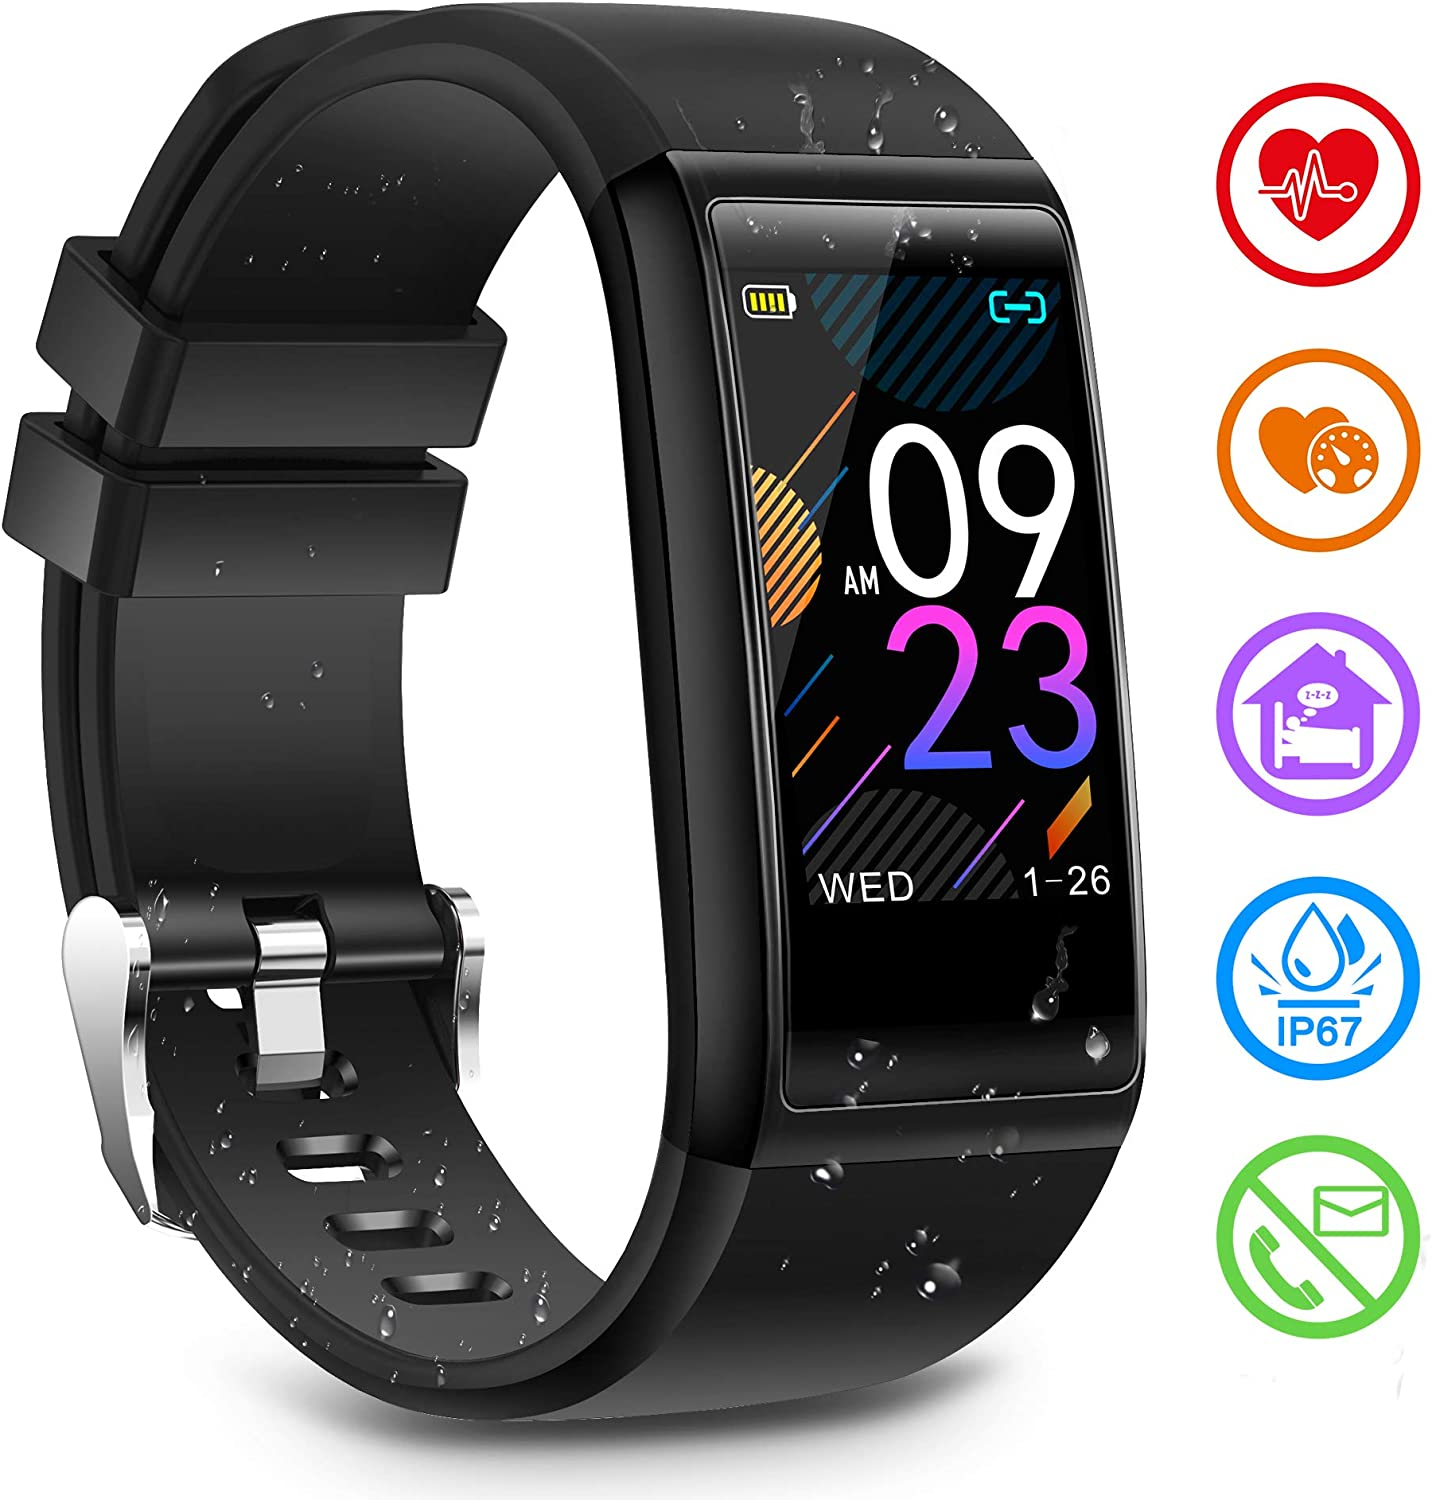 Fitness Tracker Activity Tracker Watch with Heart Rate Blood Pressure Sleep Monitor IP68 Waterproof Smart Watch with Calorie Counter Pedometer Tracker Call SMS Push Fitness Watch for Women Men Kids